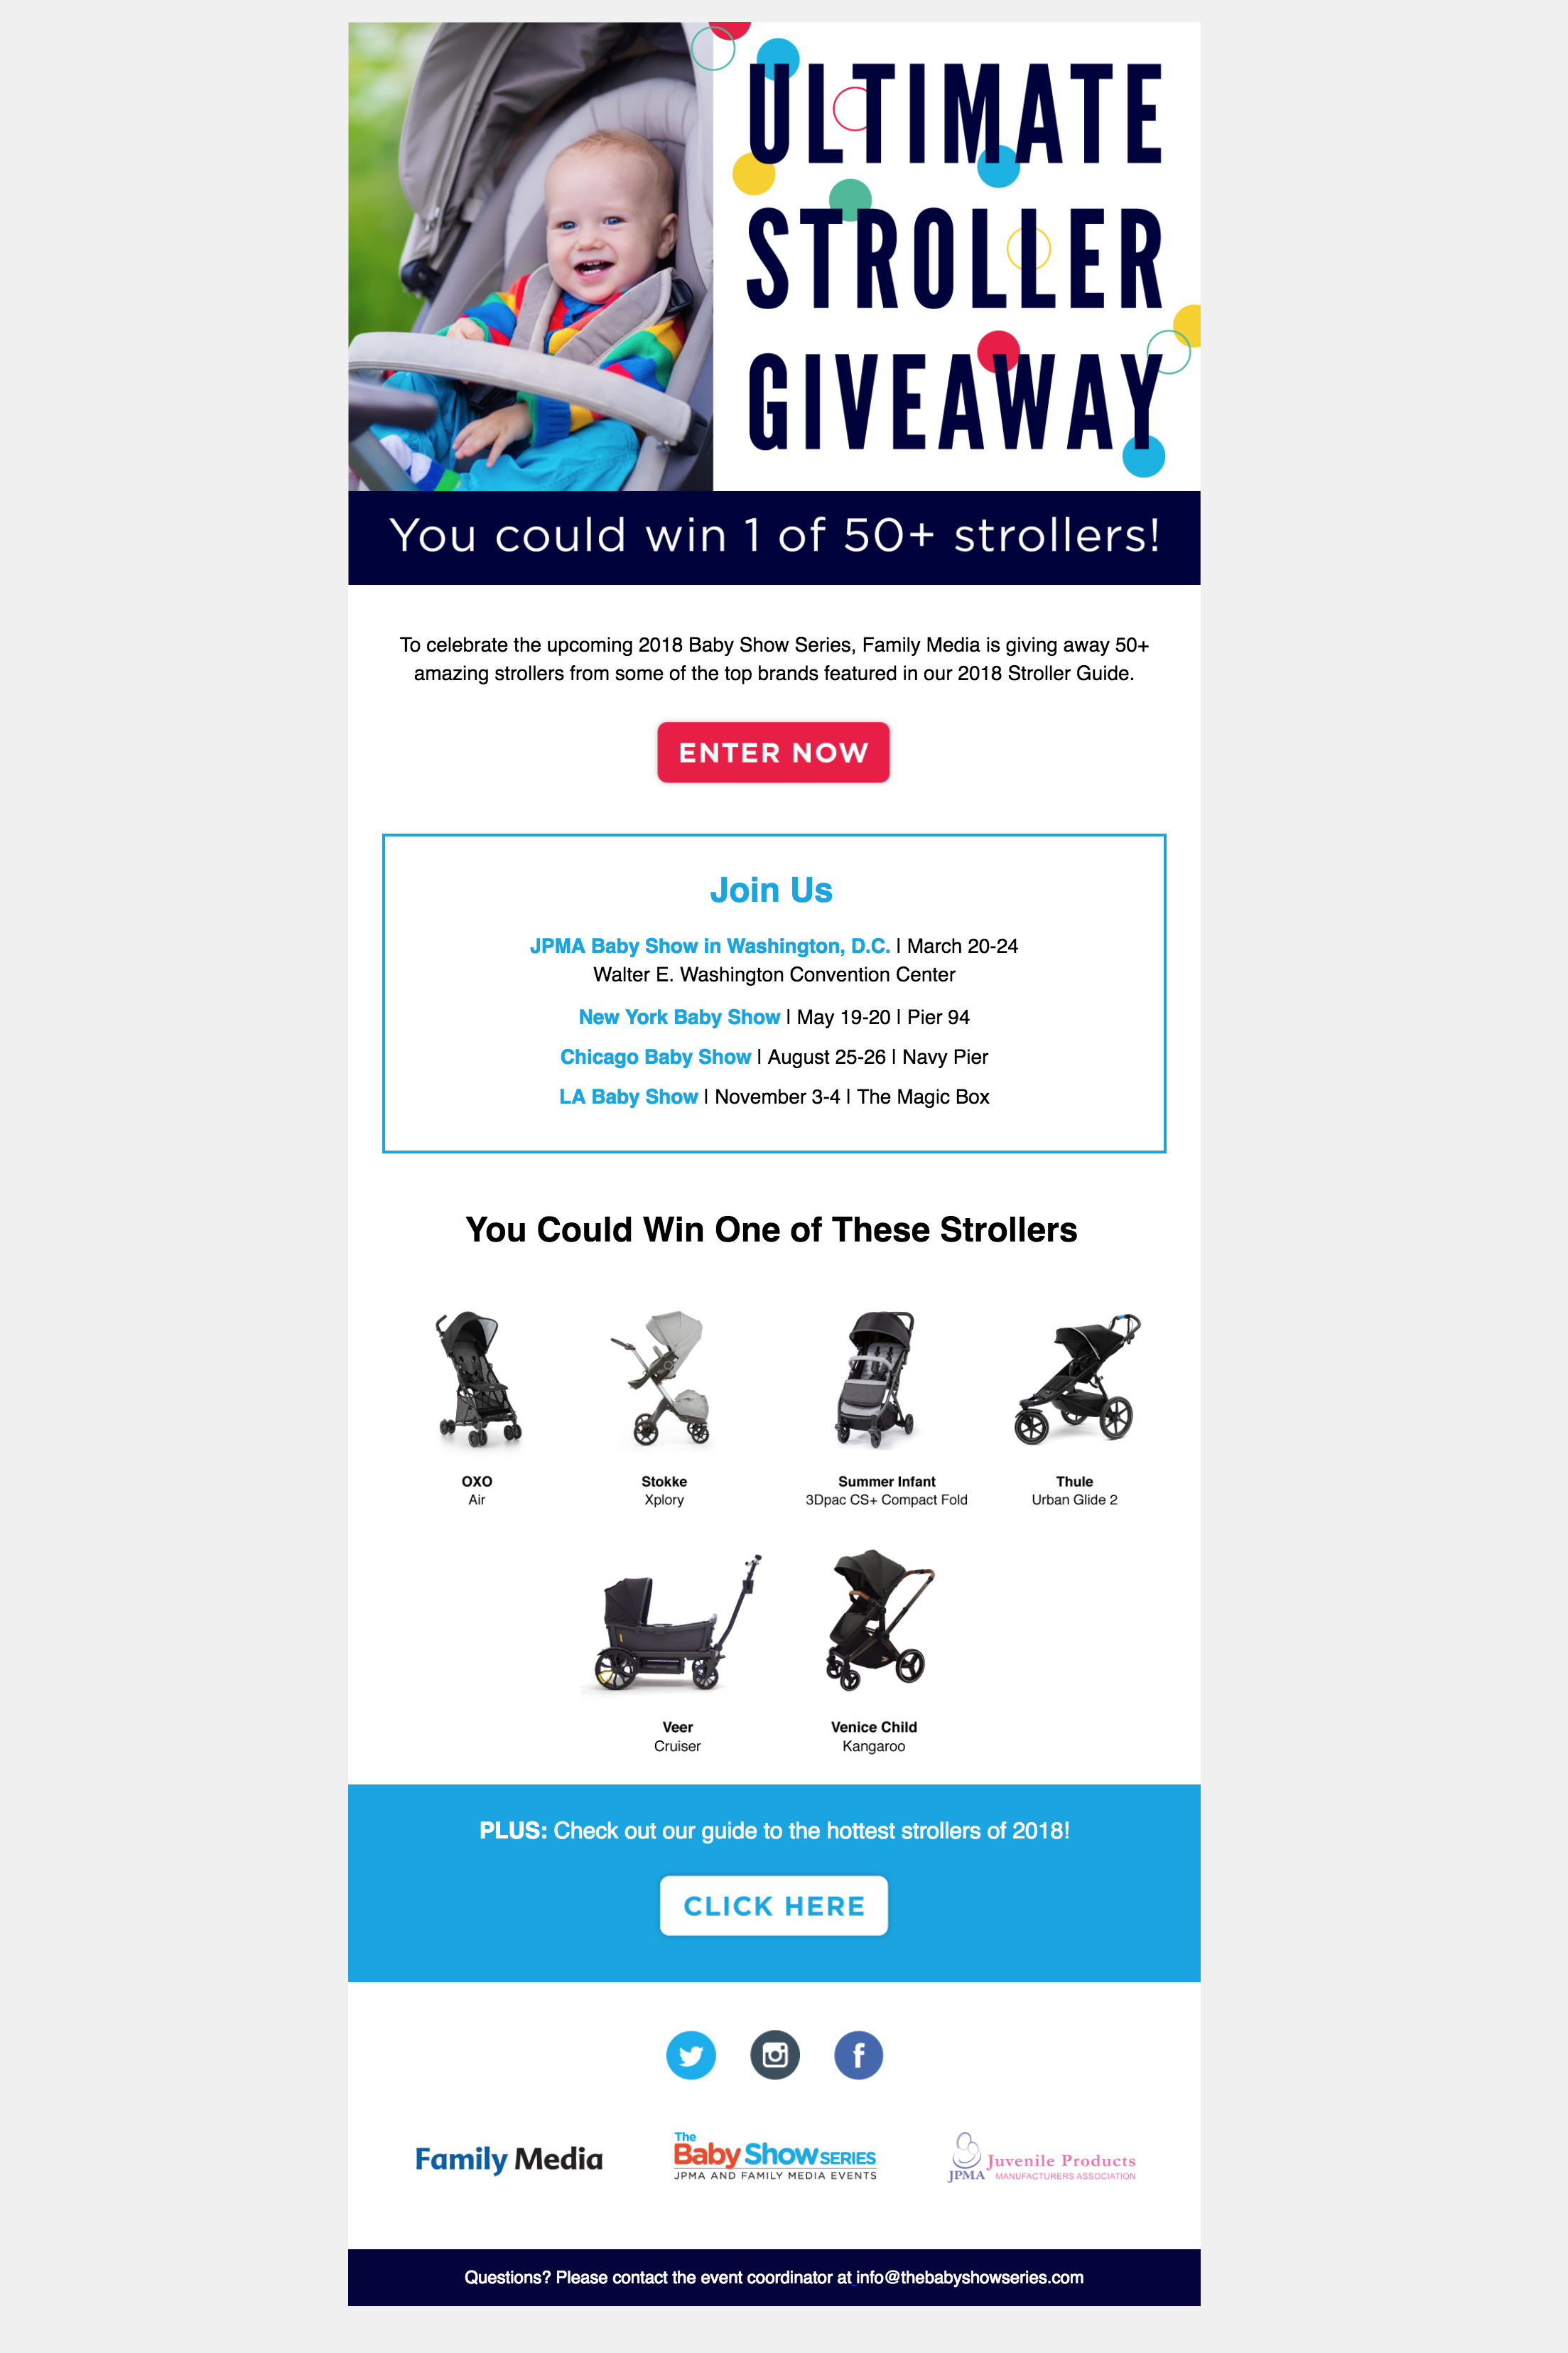 2018.03.03_New York Family Email blast_Summer Infant 3Dpac CS+_cropped 2x3.png